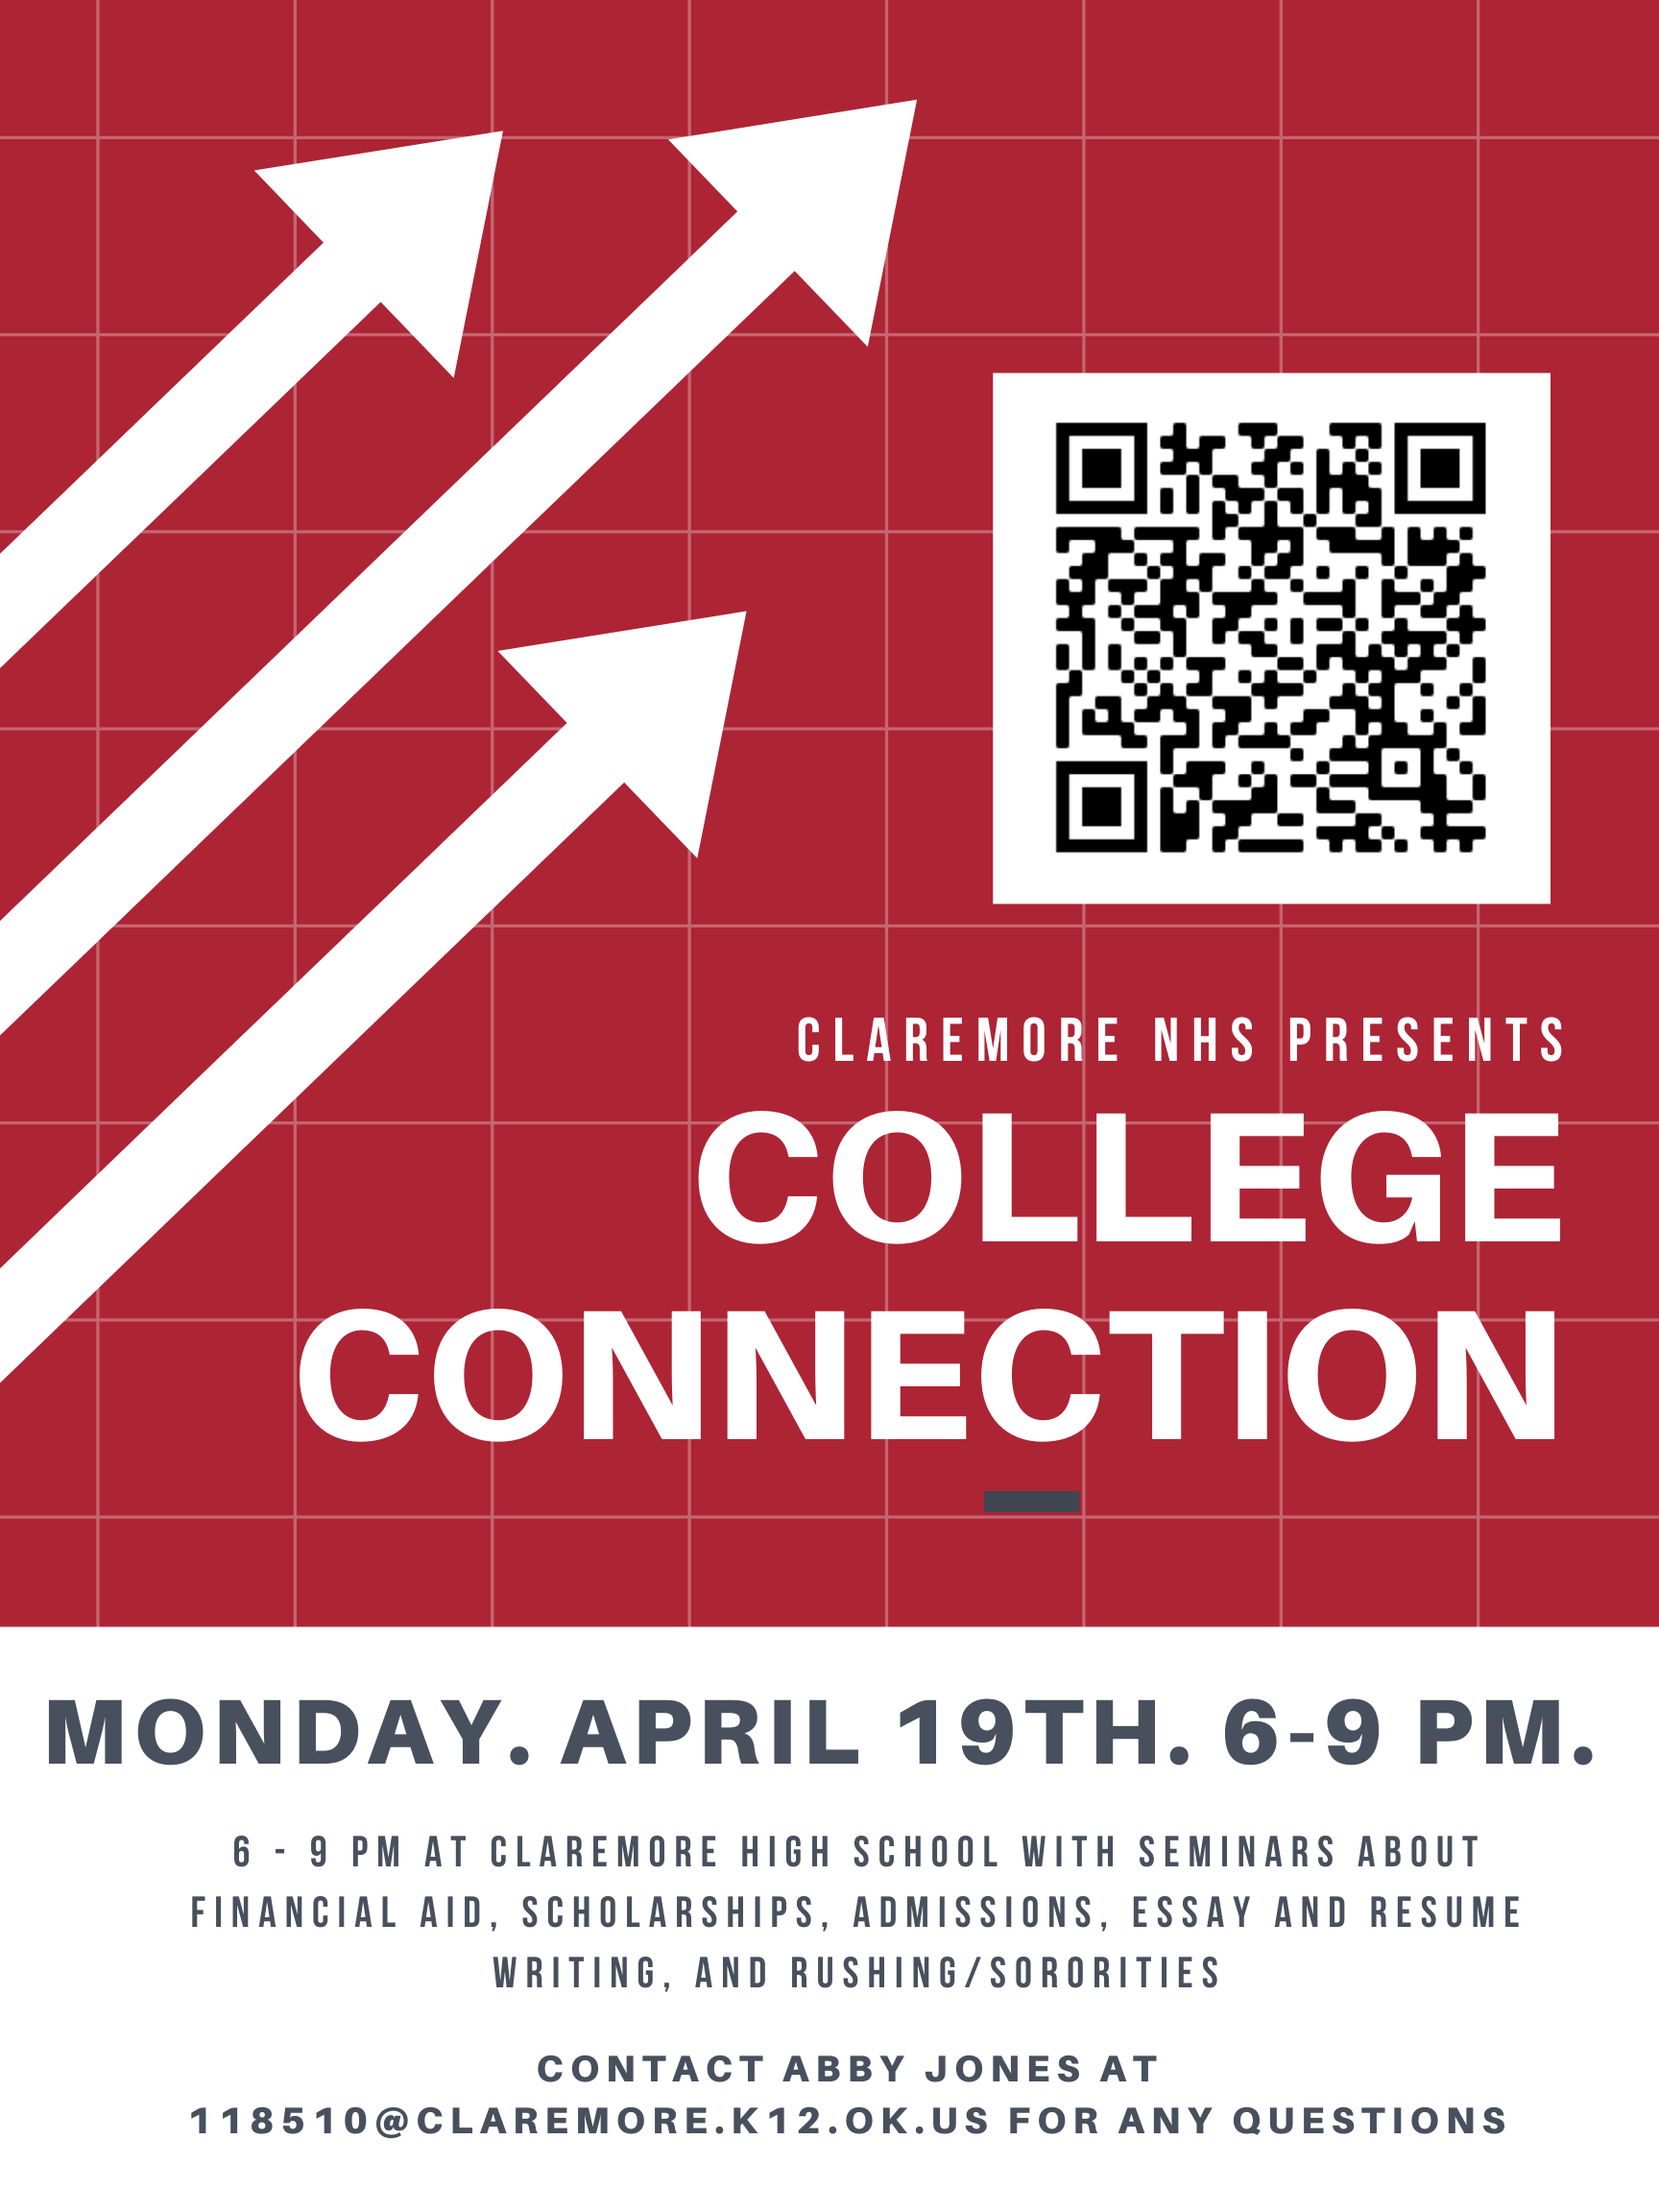 College Connection hosted by NHS